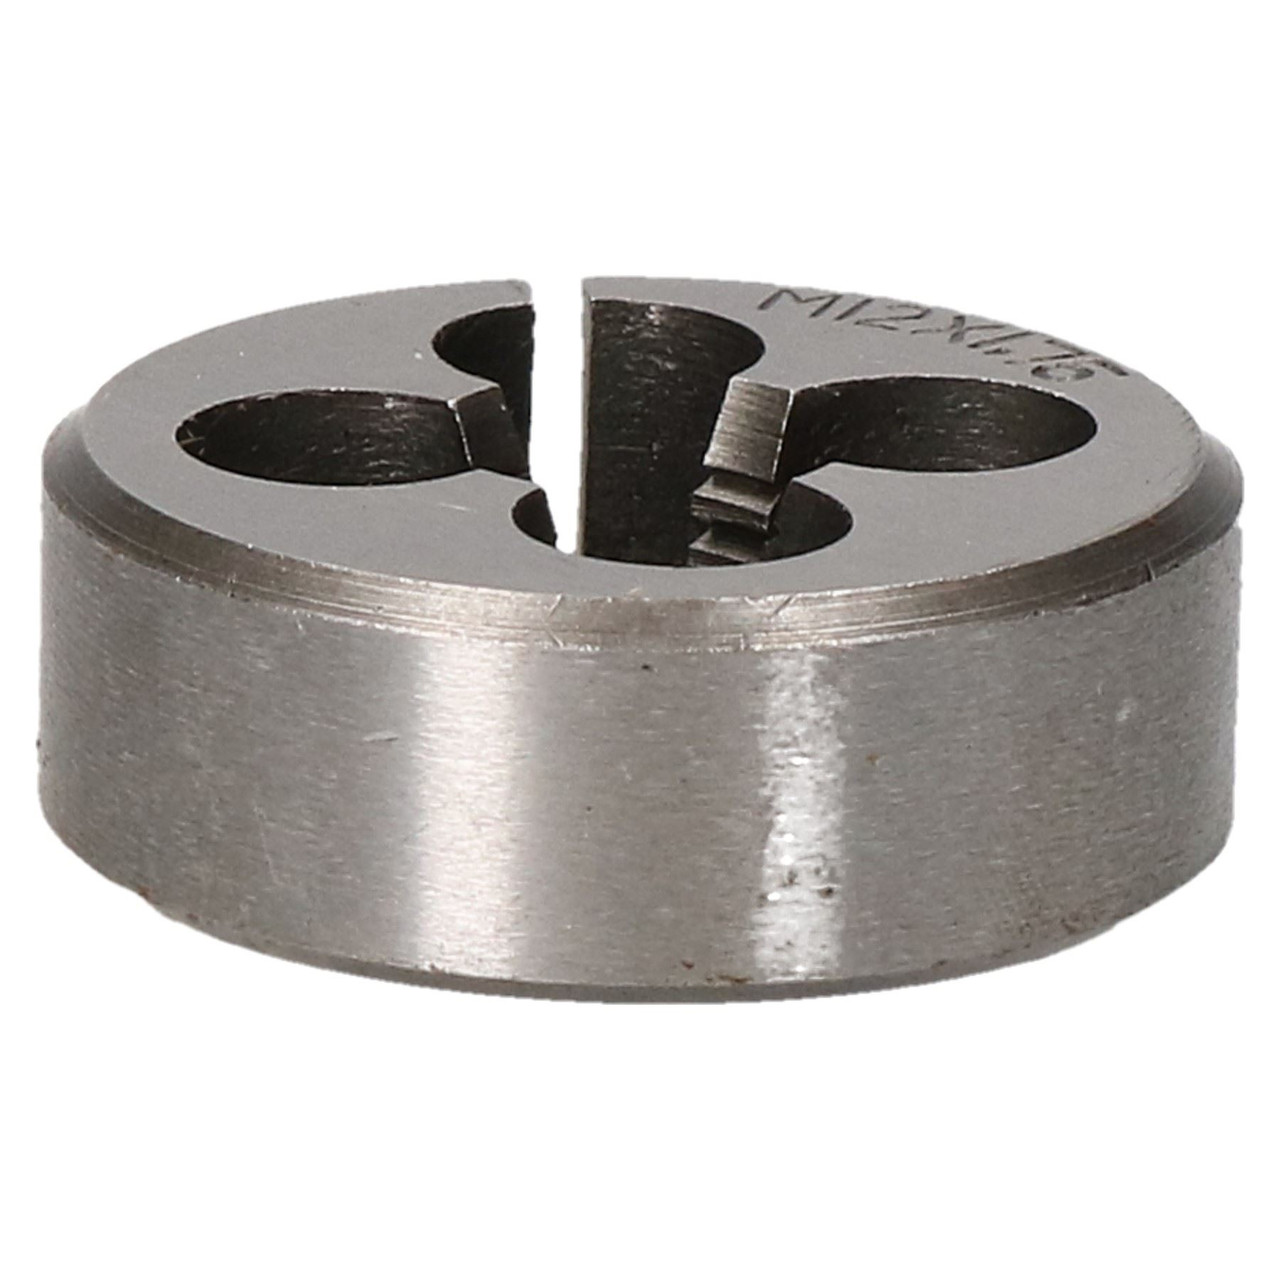 M12 x 1.75mm Metric Tap and Die Tungsten Steel Taper and Plug TD009/_TD044